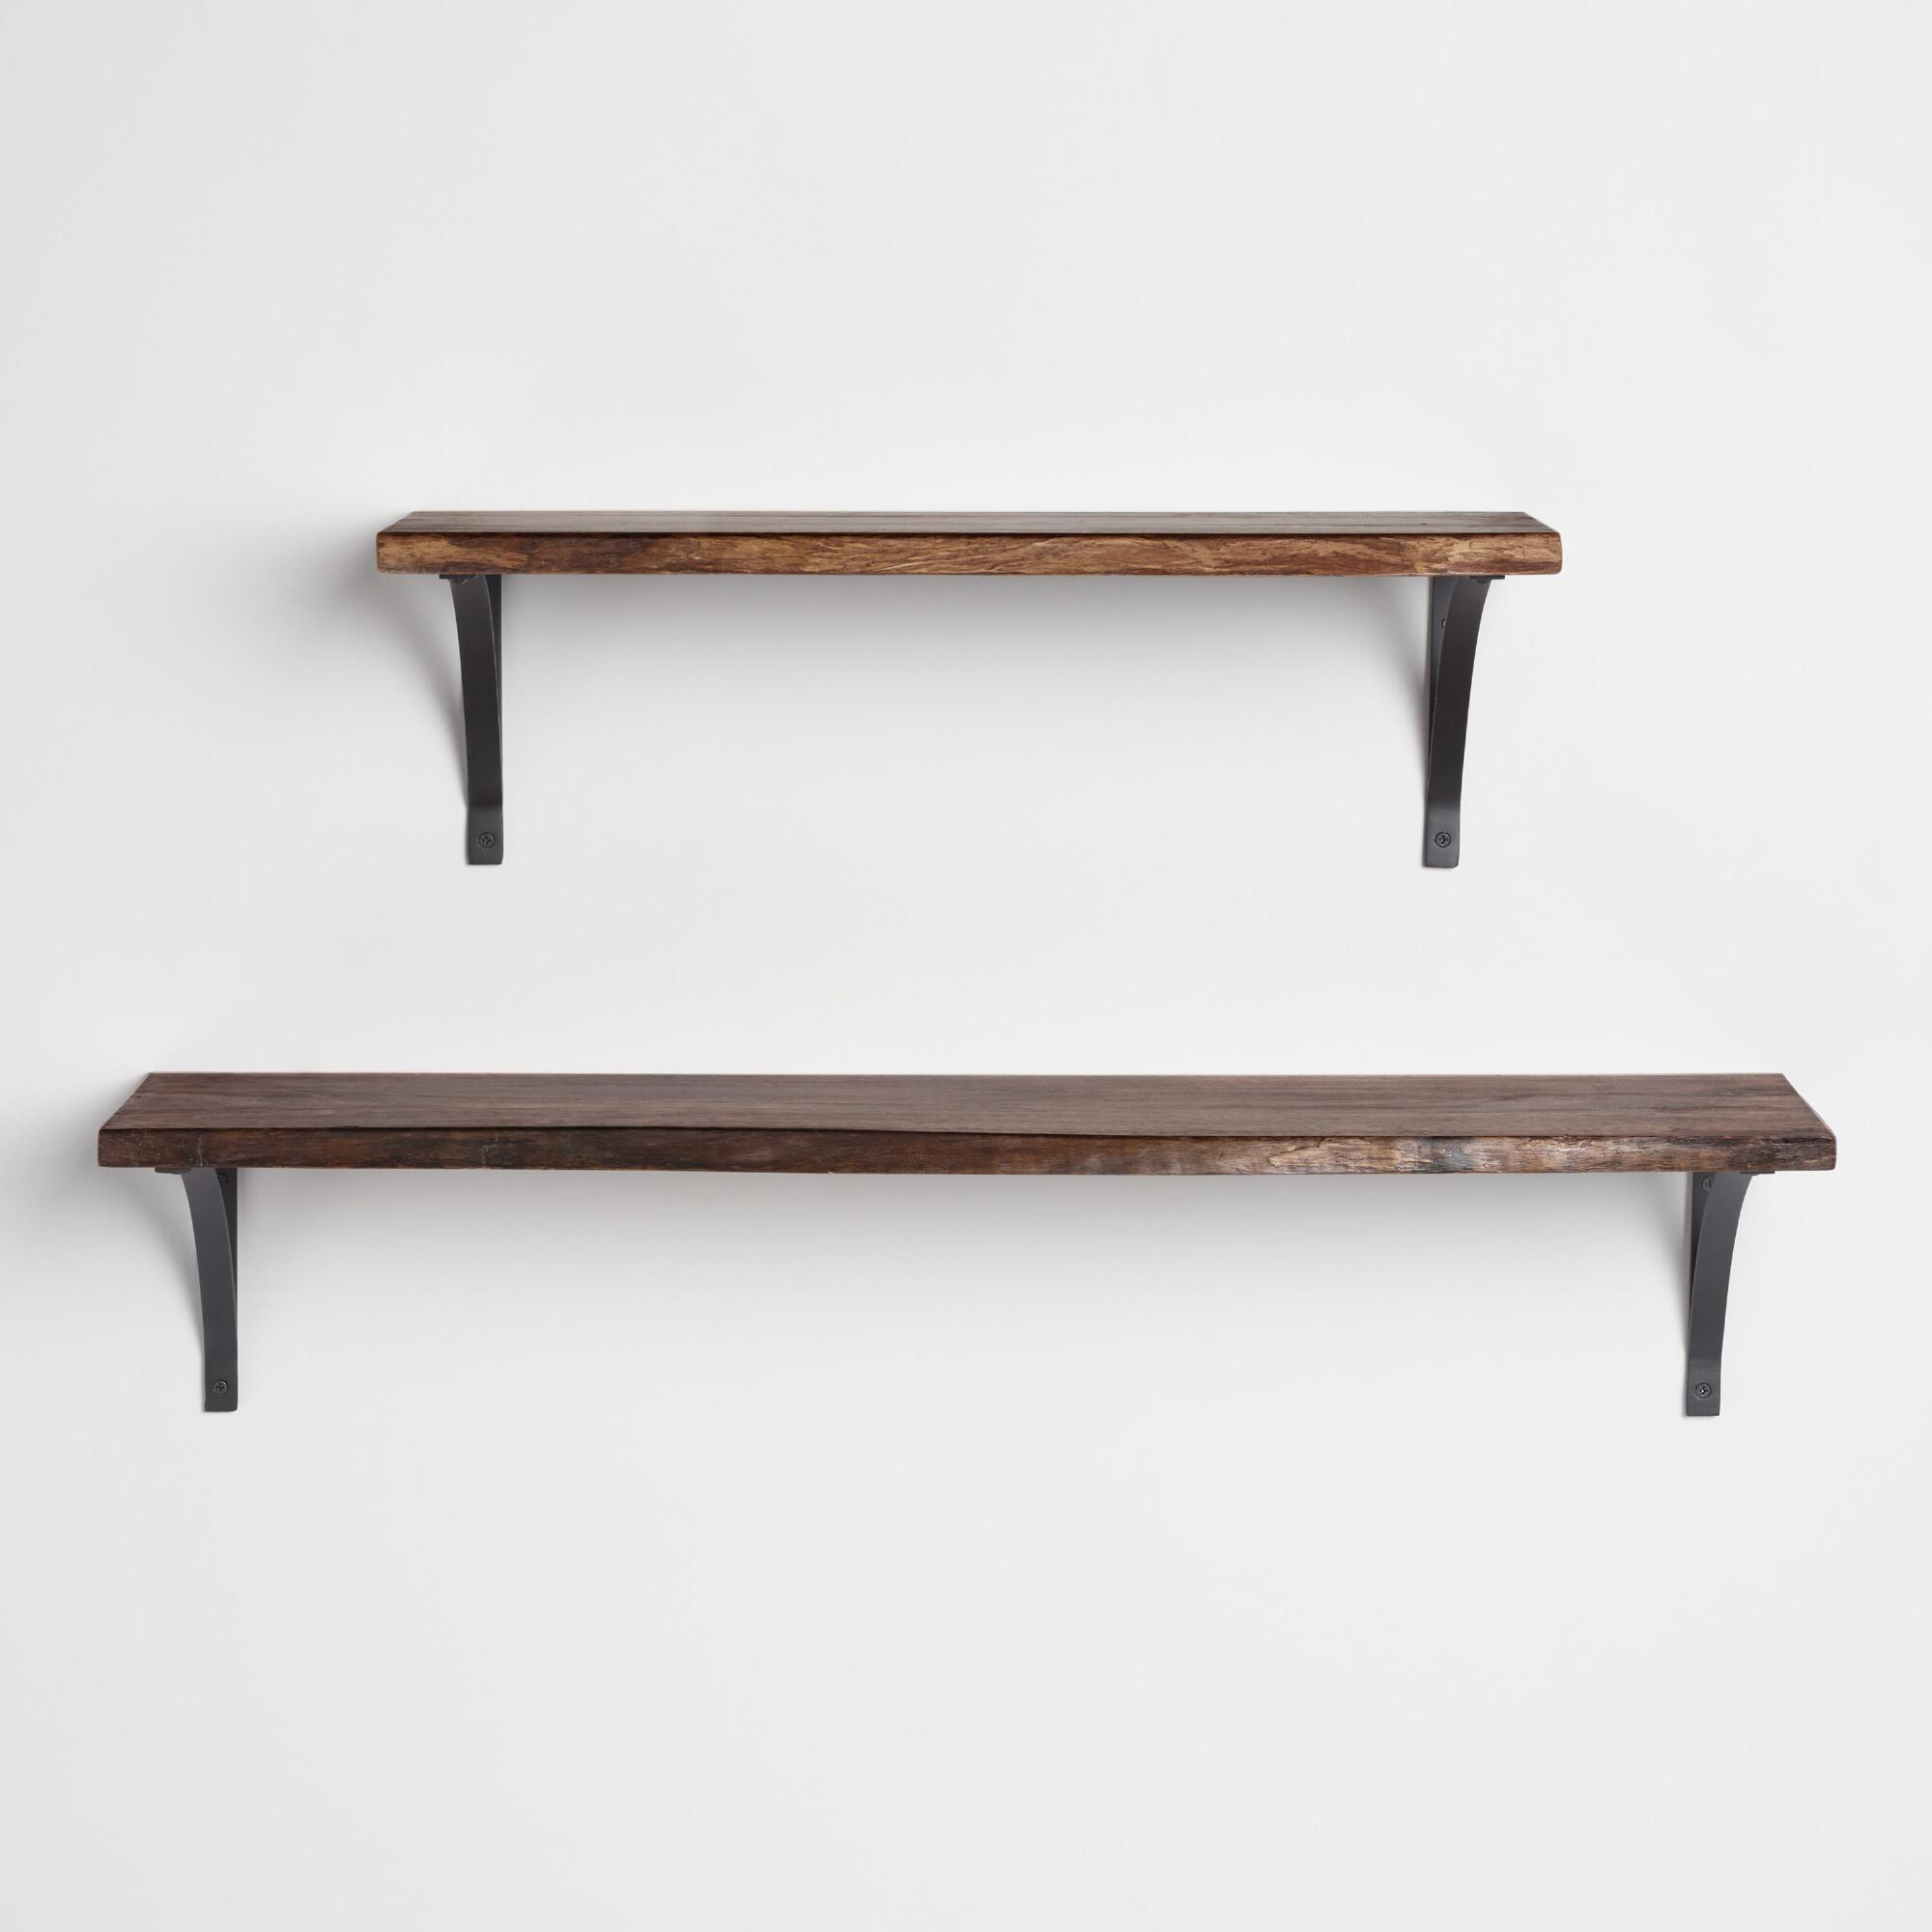 Category home decor page 7 - Organic Edge Wood Mix Match Wall Shelf Collection